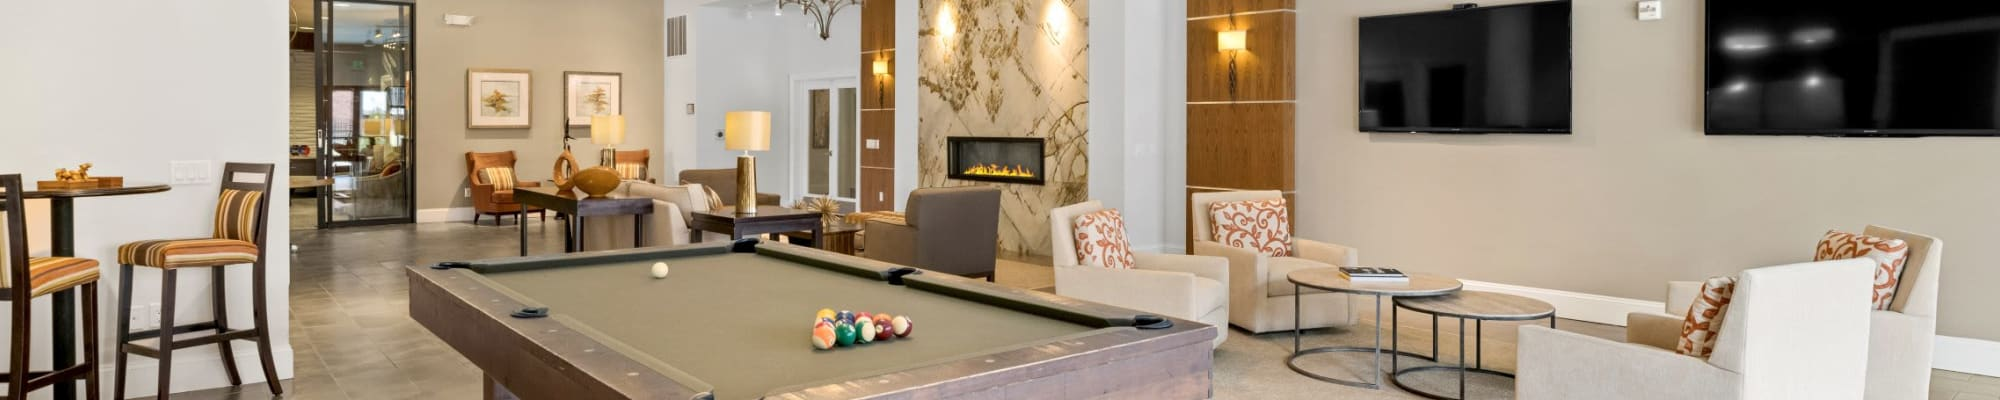 Community perks at The Parc at Greenwood Village in Greenwood Village, Colorado